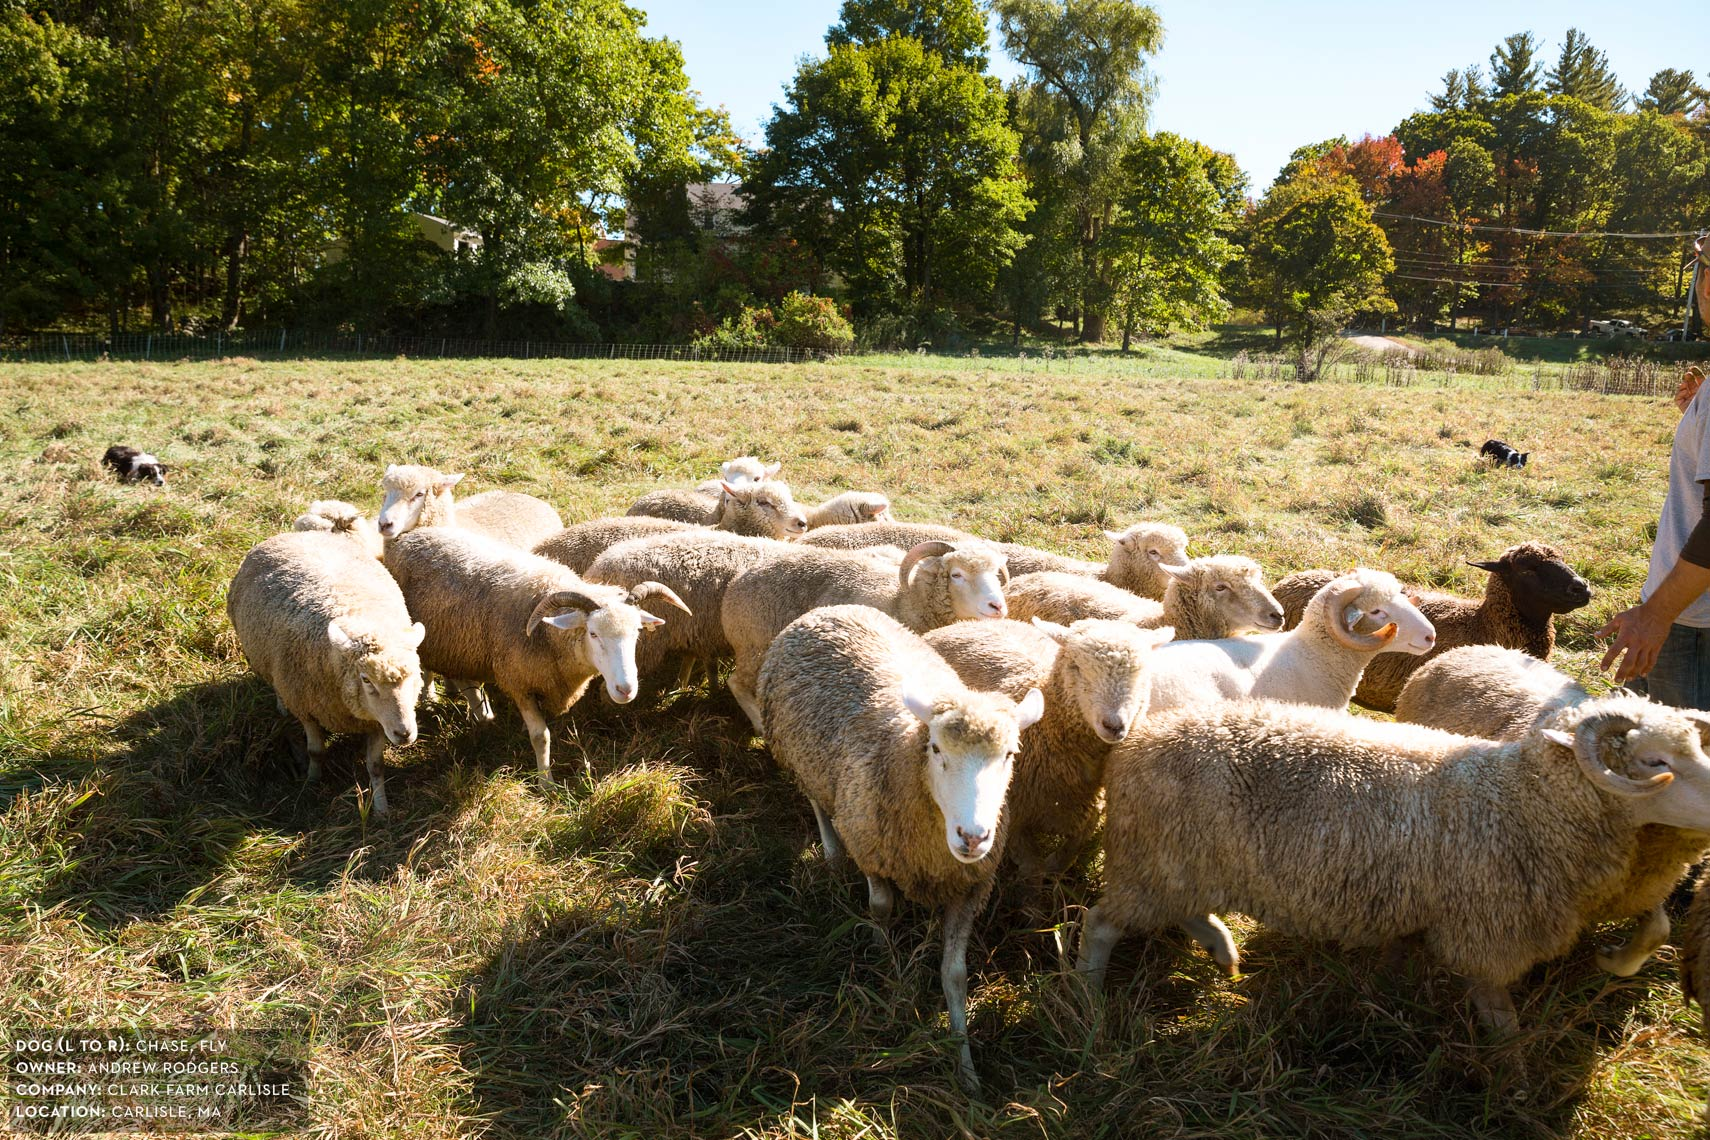 Dogs at Work: Fly and Chase herding sheep on Clark Farm Carlisle